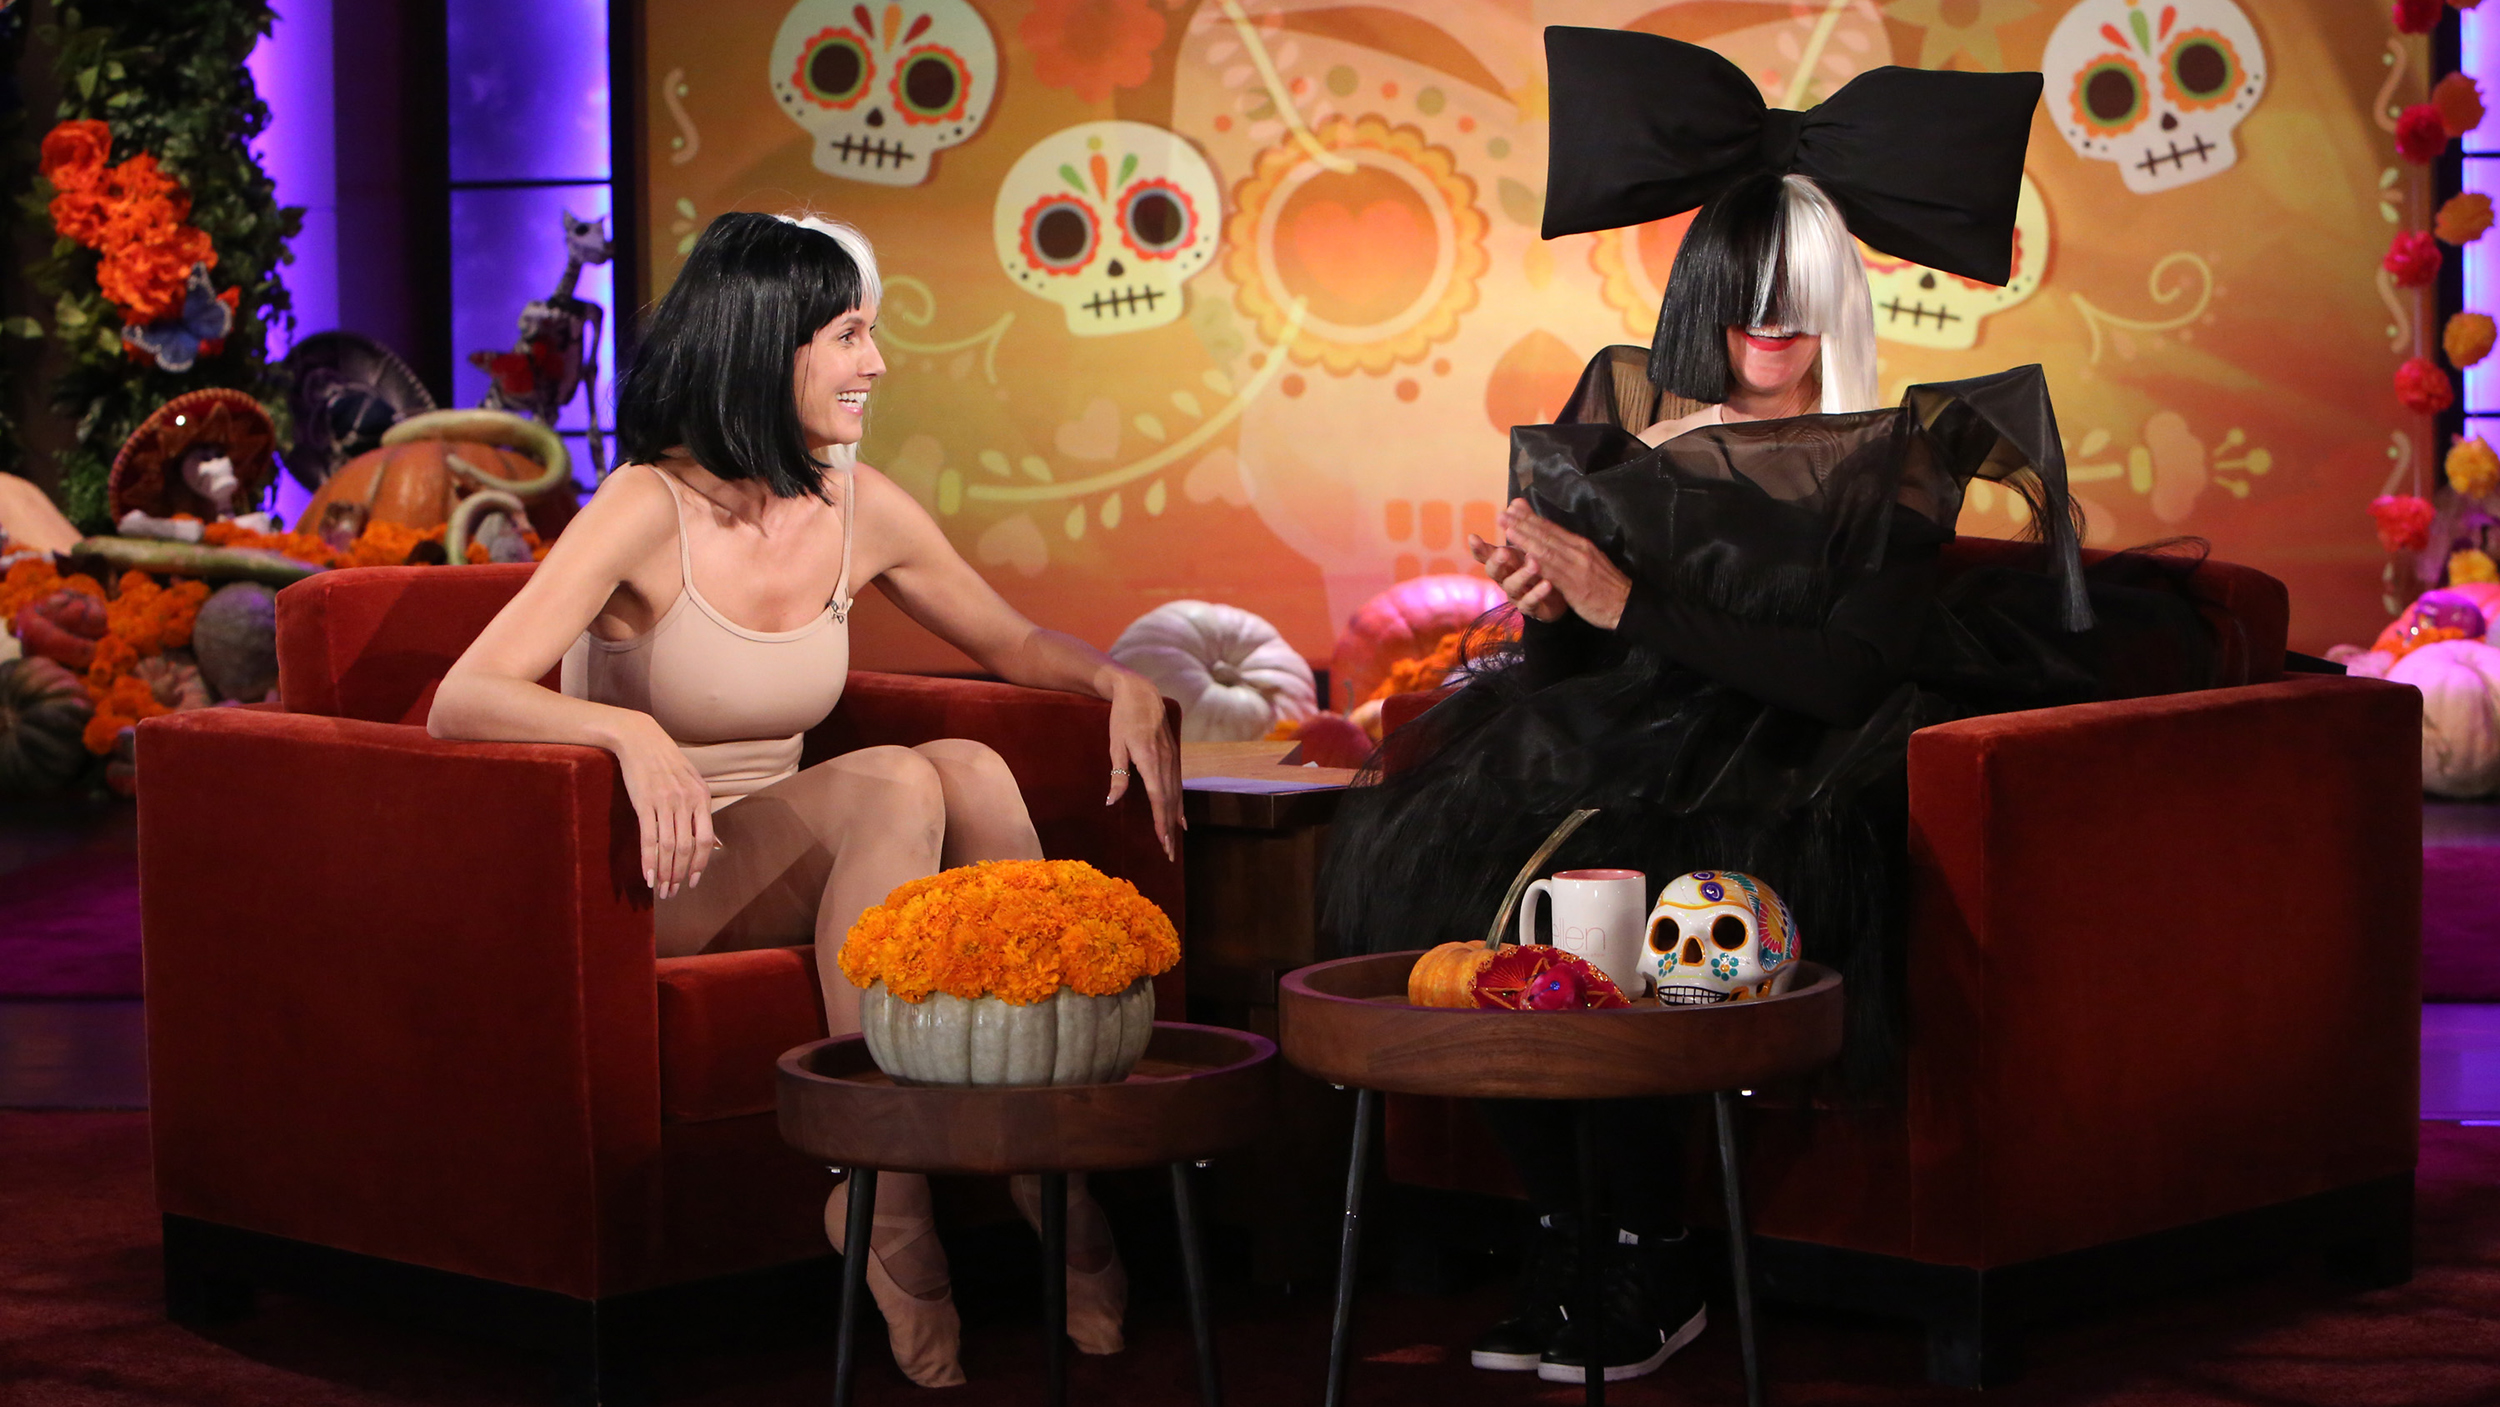 ellen degeneres and heidi klum dress as sia and maddie ziegler for halloween